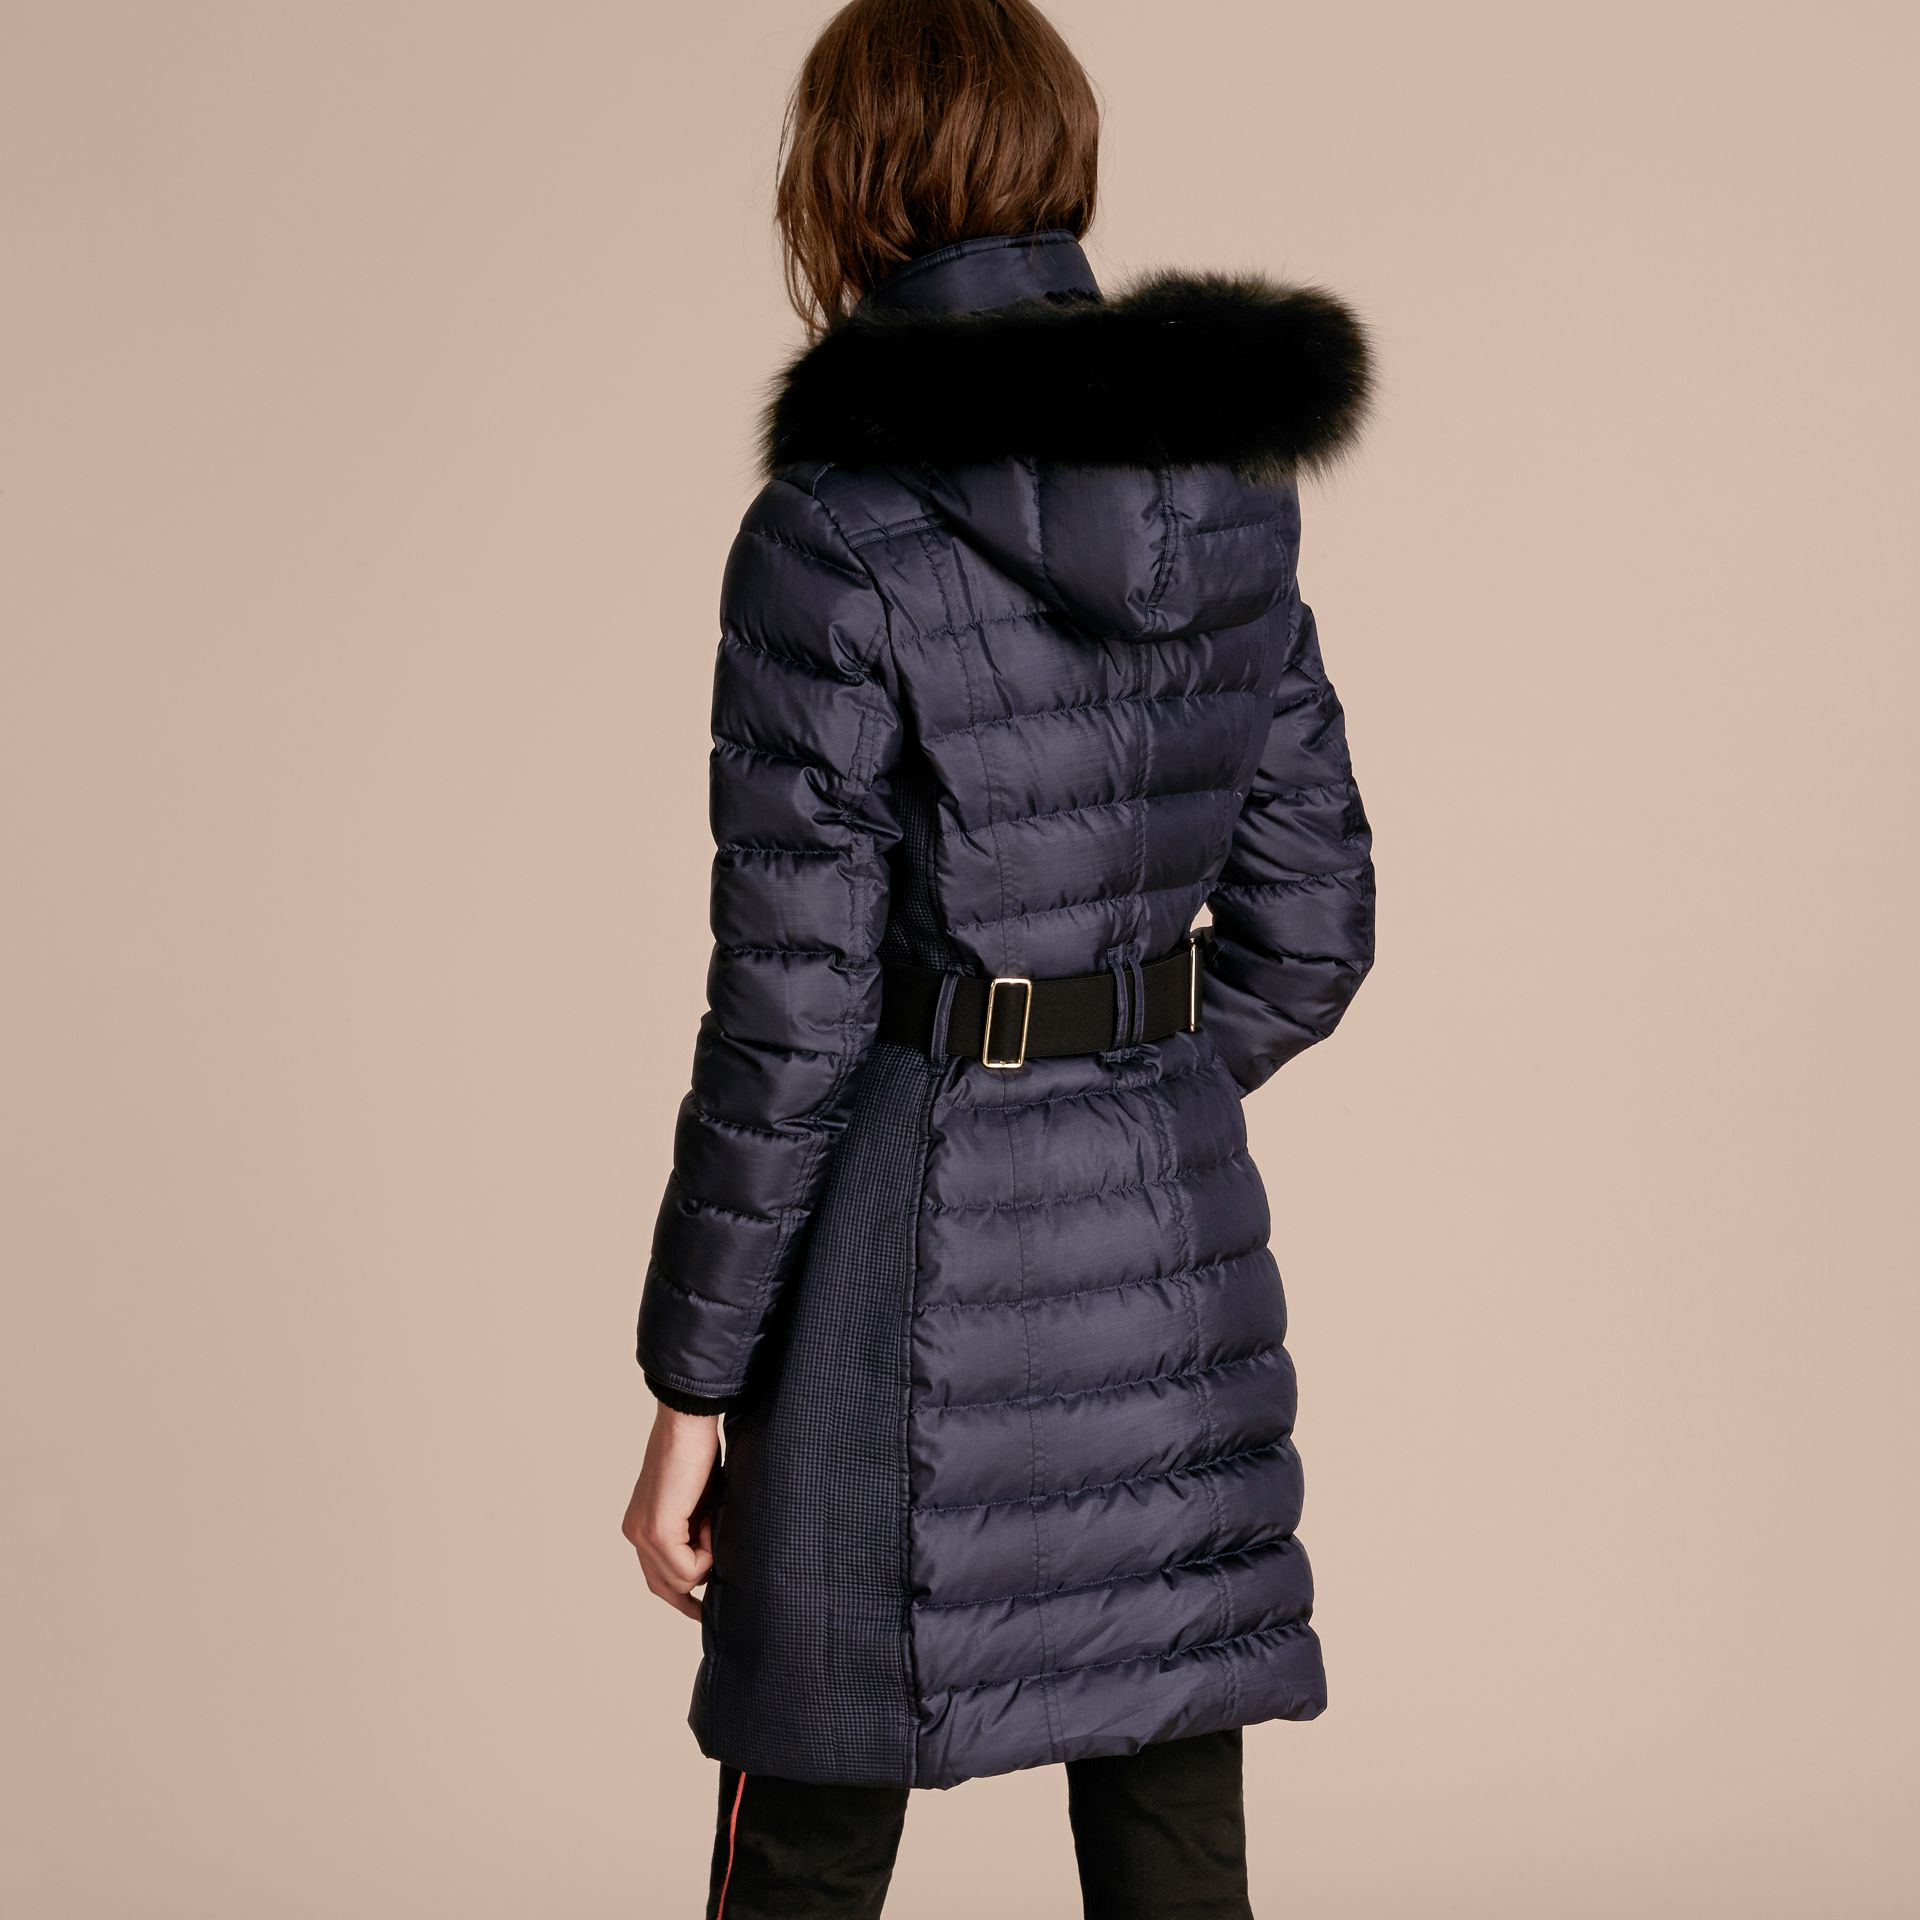 Navy Down-filled Coat with Fur-trimmed Hood Navy - gallery image 3